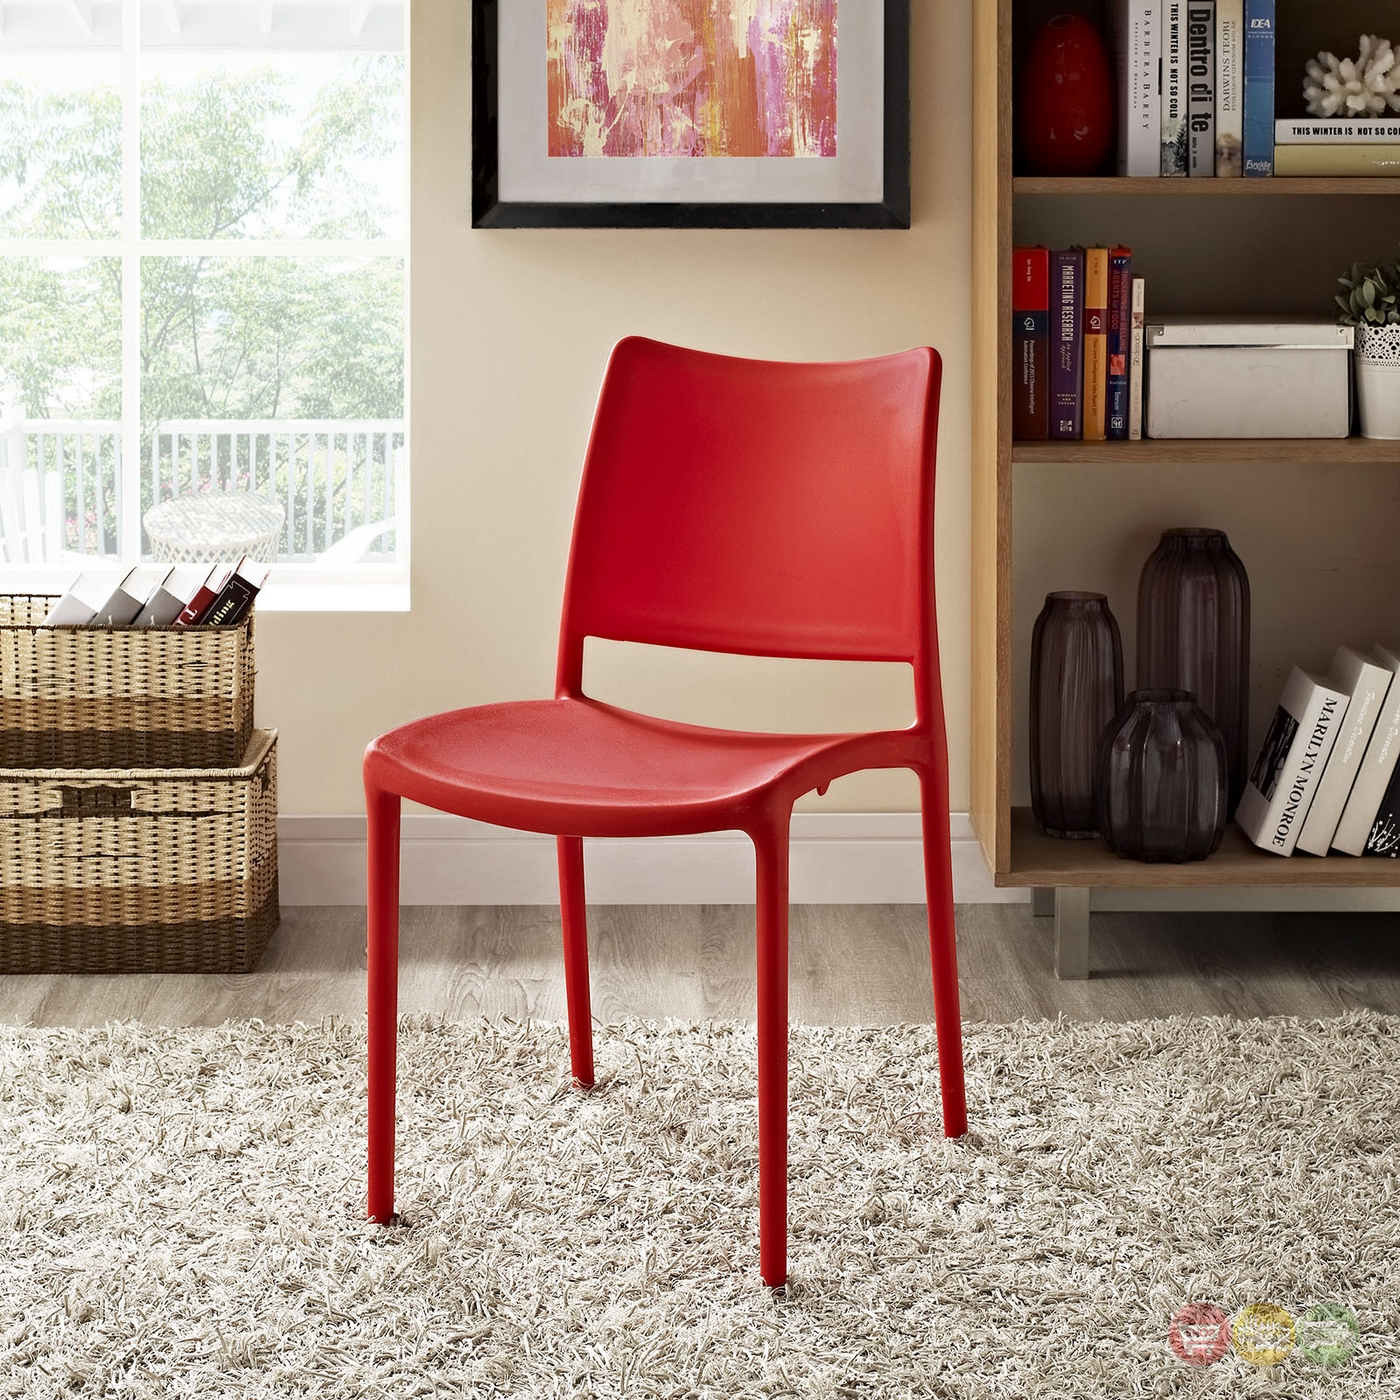 Hipster Contemporary Stackable Plastic Dining Side Chair, Red